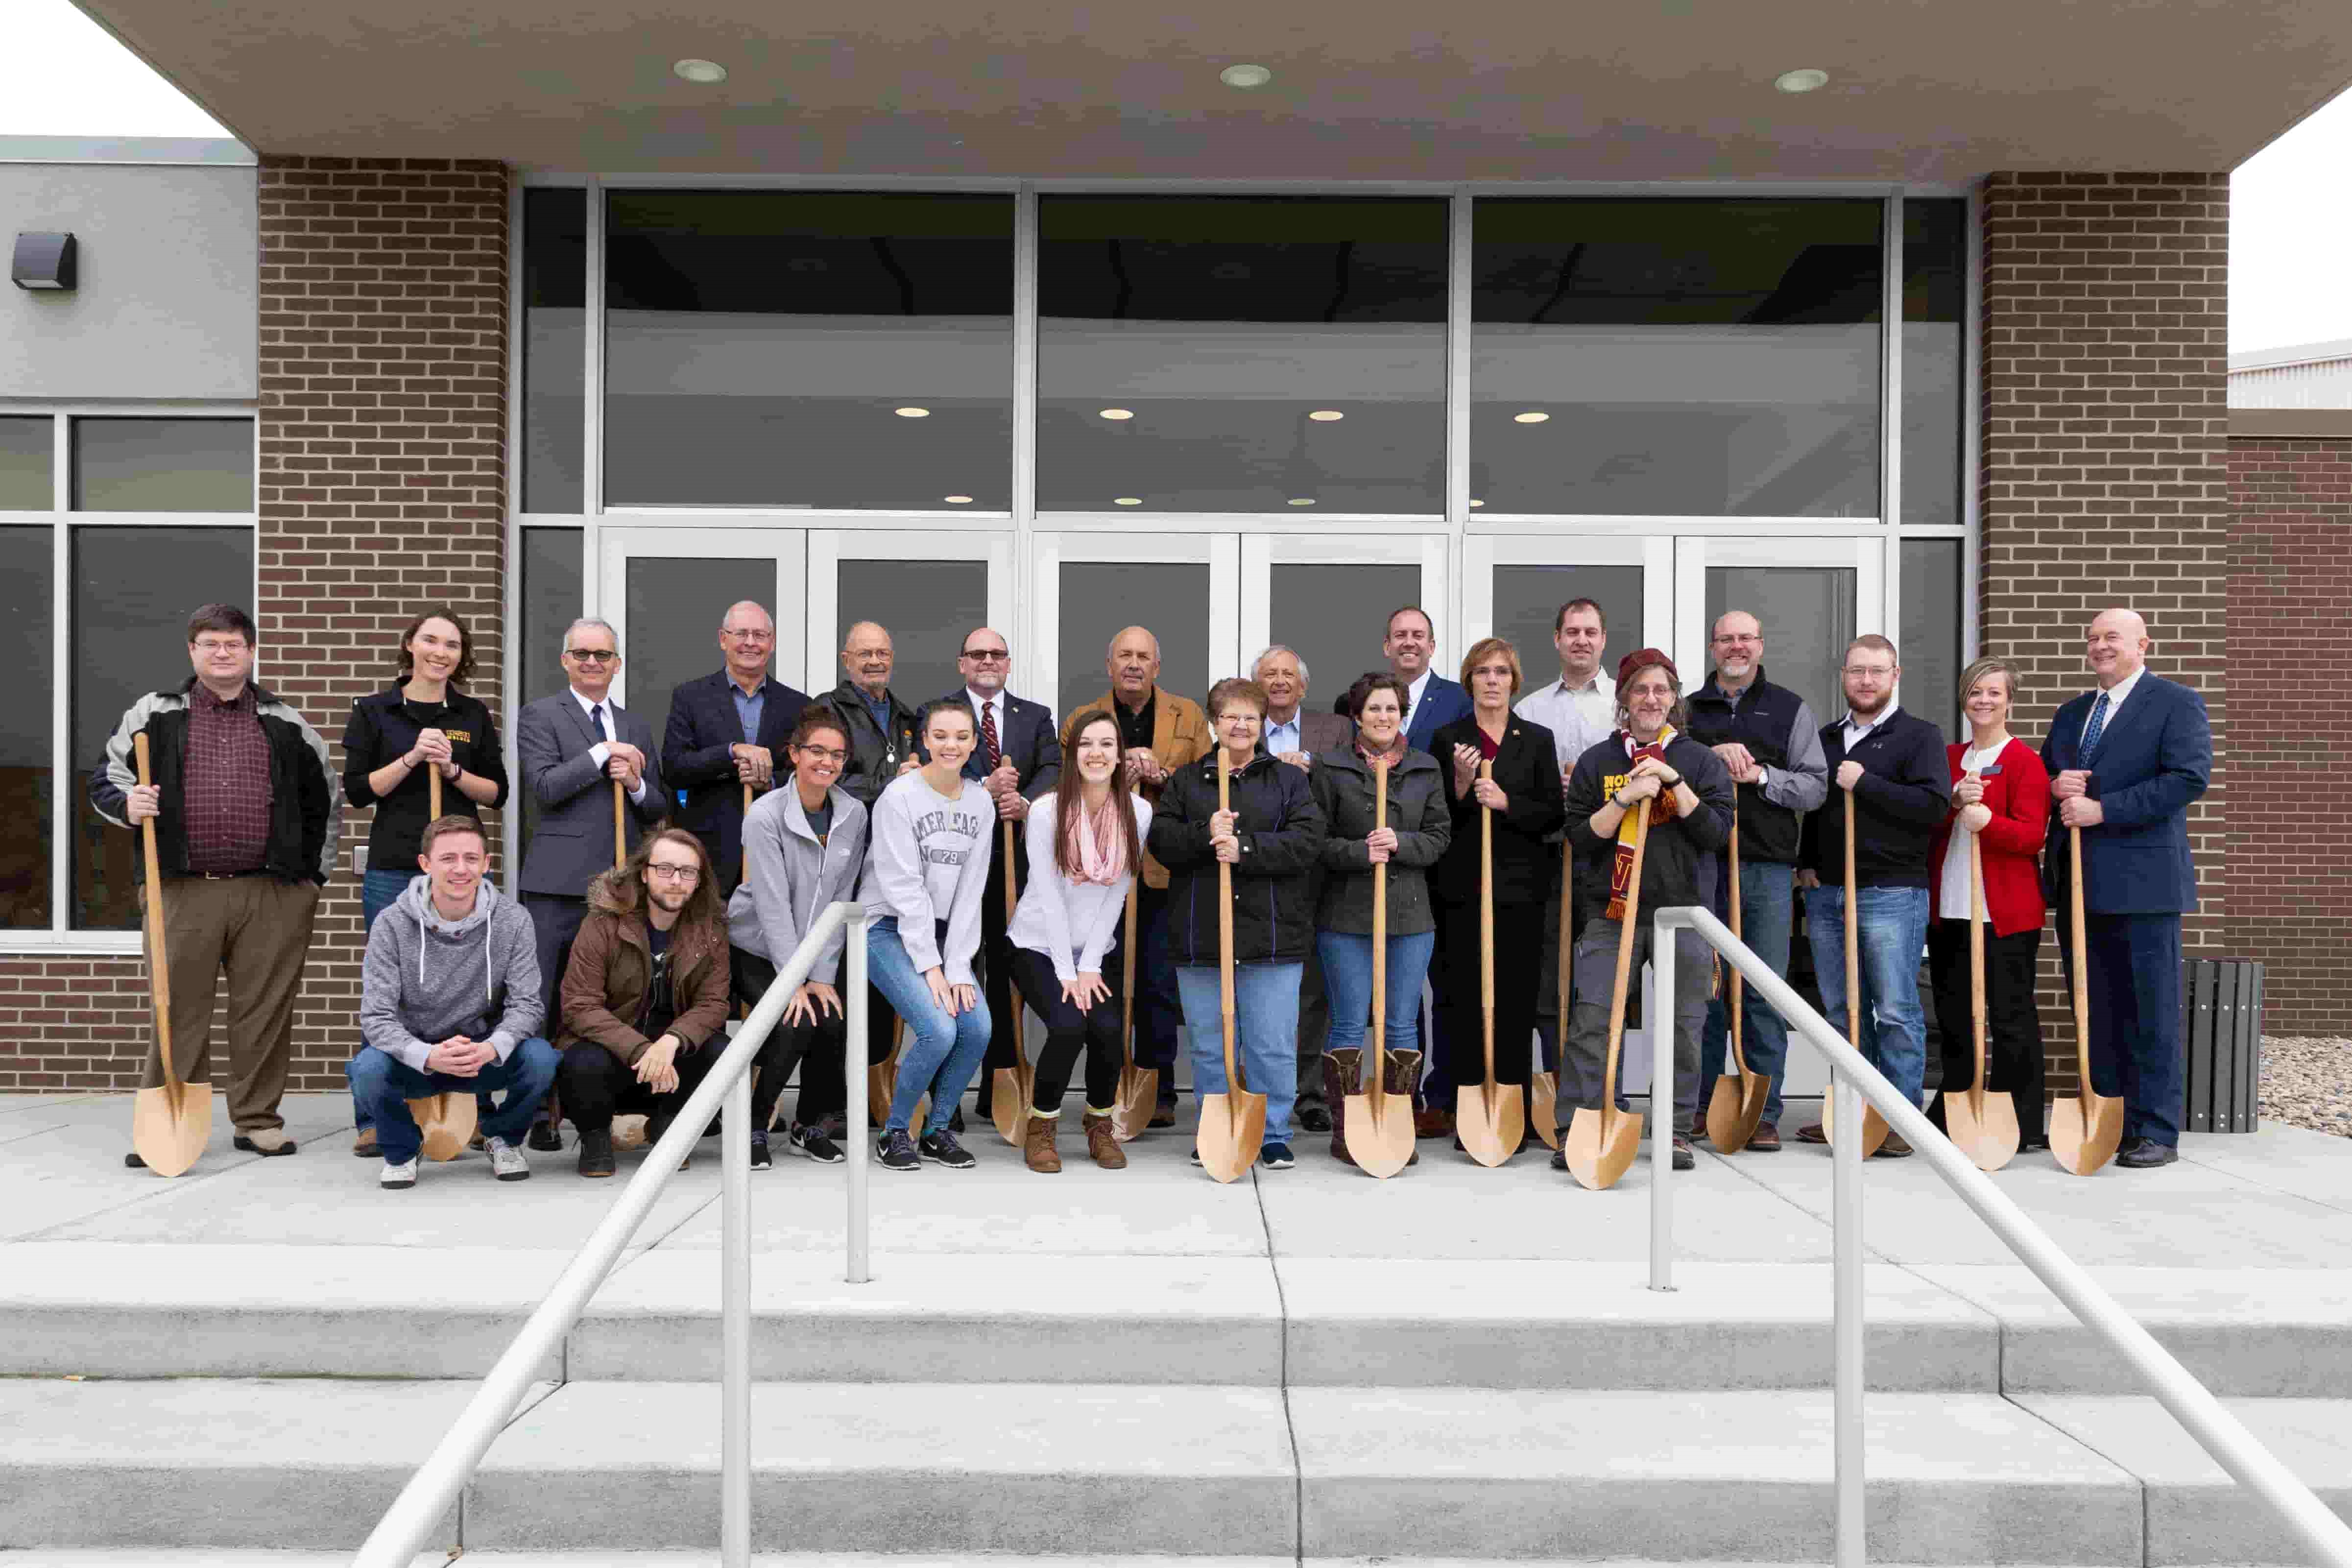 Group photo of faculty and students with shovels